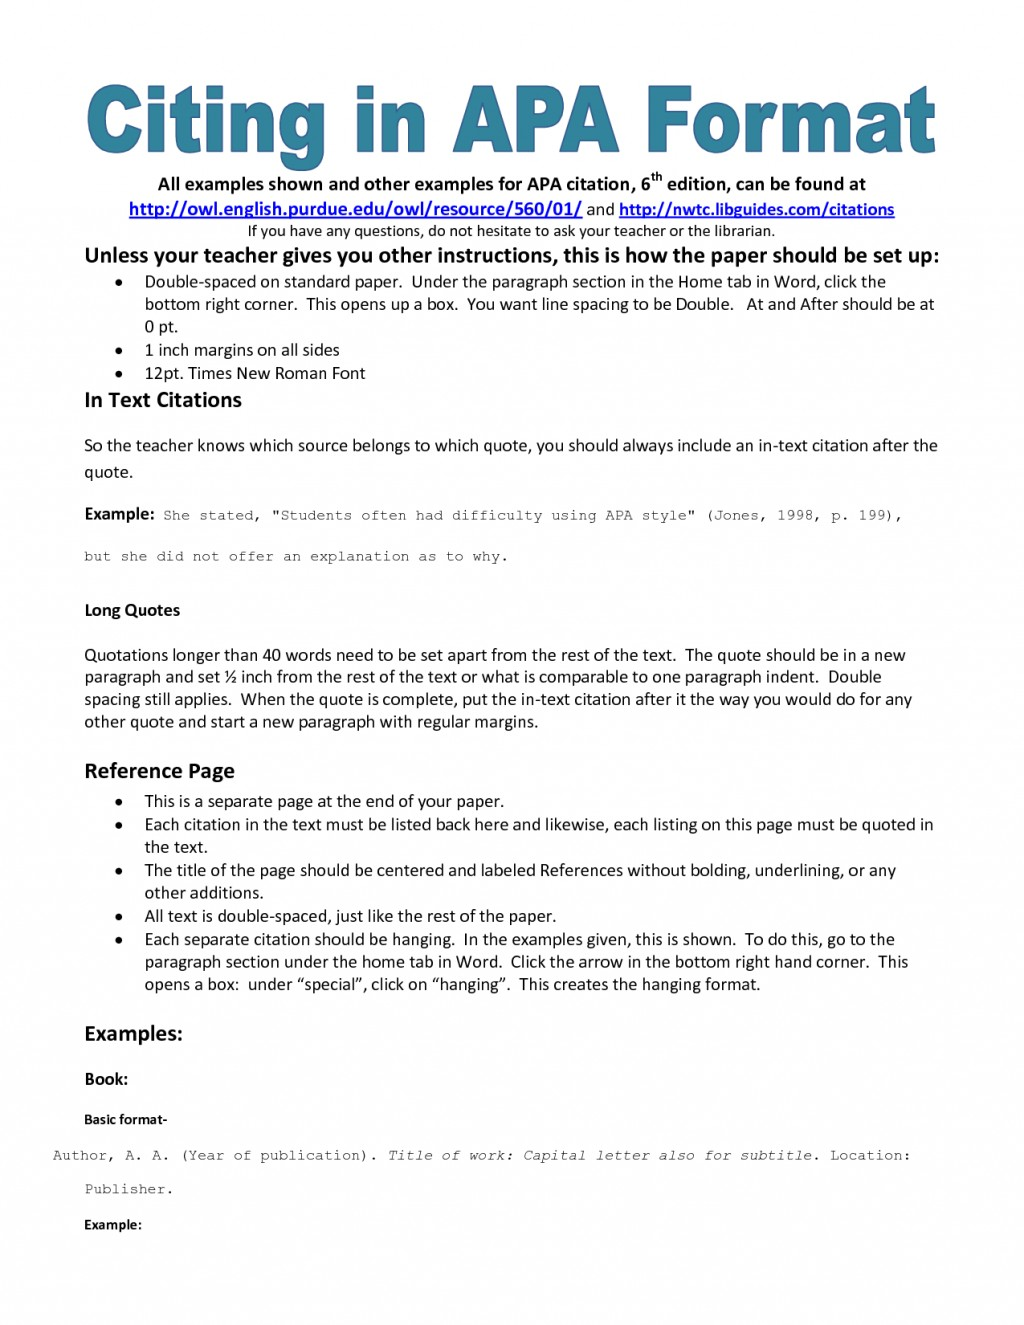 001 Essay Example How To Cite An Stunning Apa In A Book Style Article Quote Sources Format Large